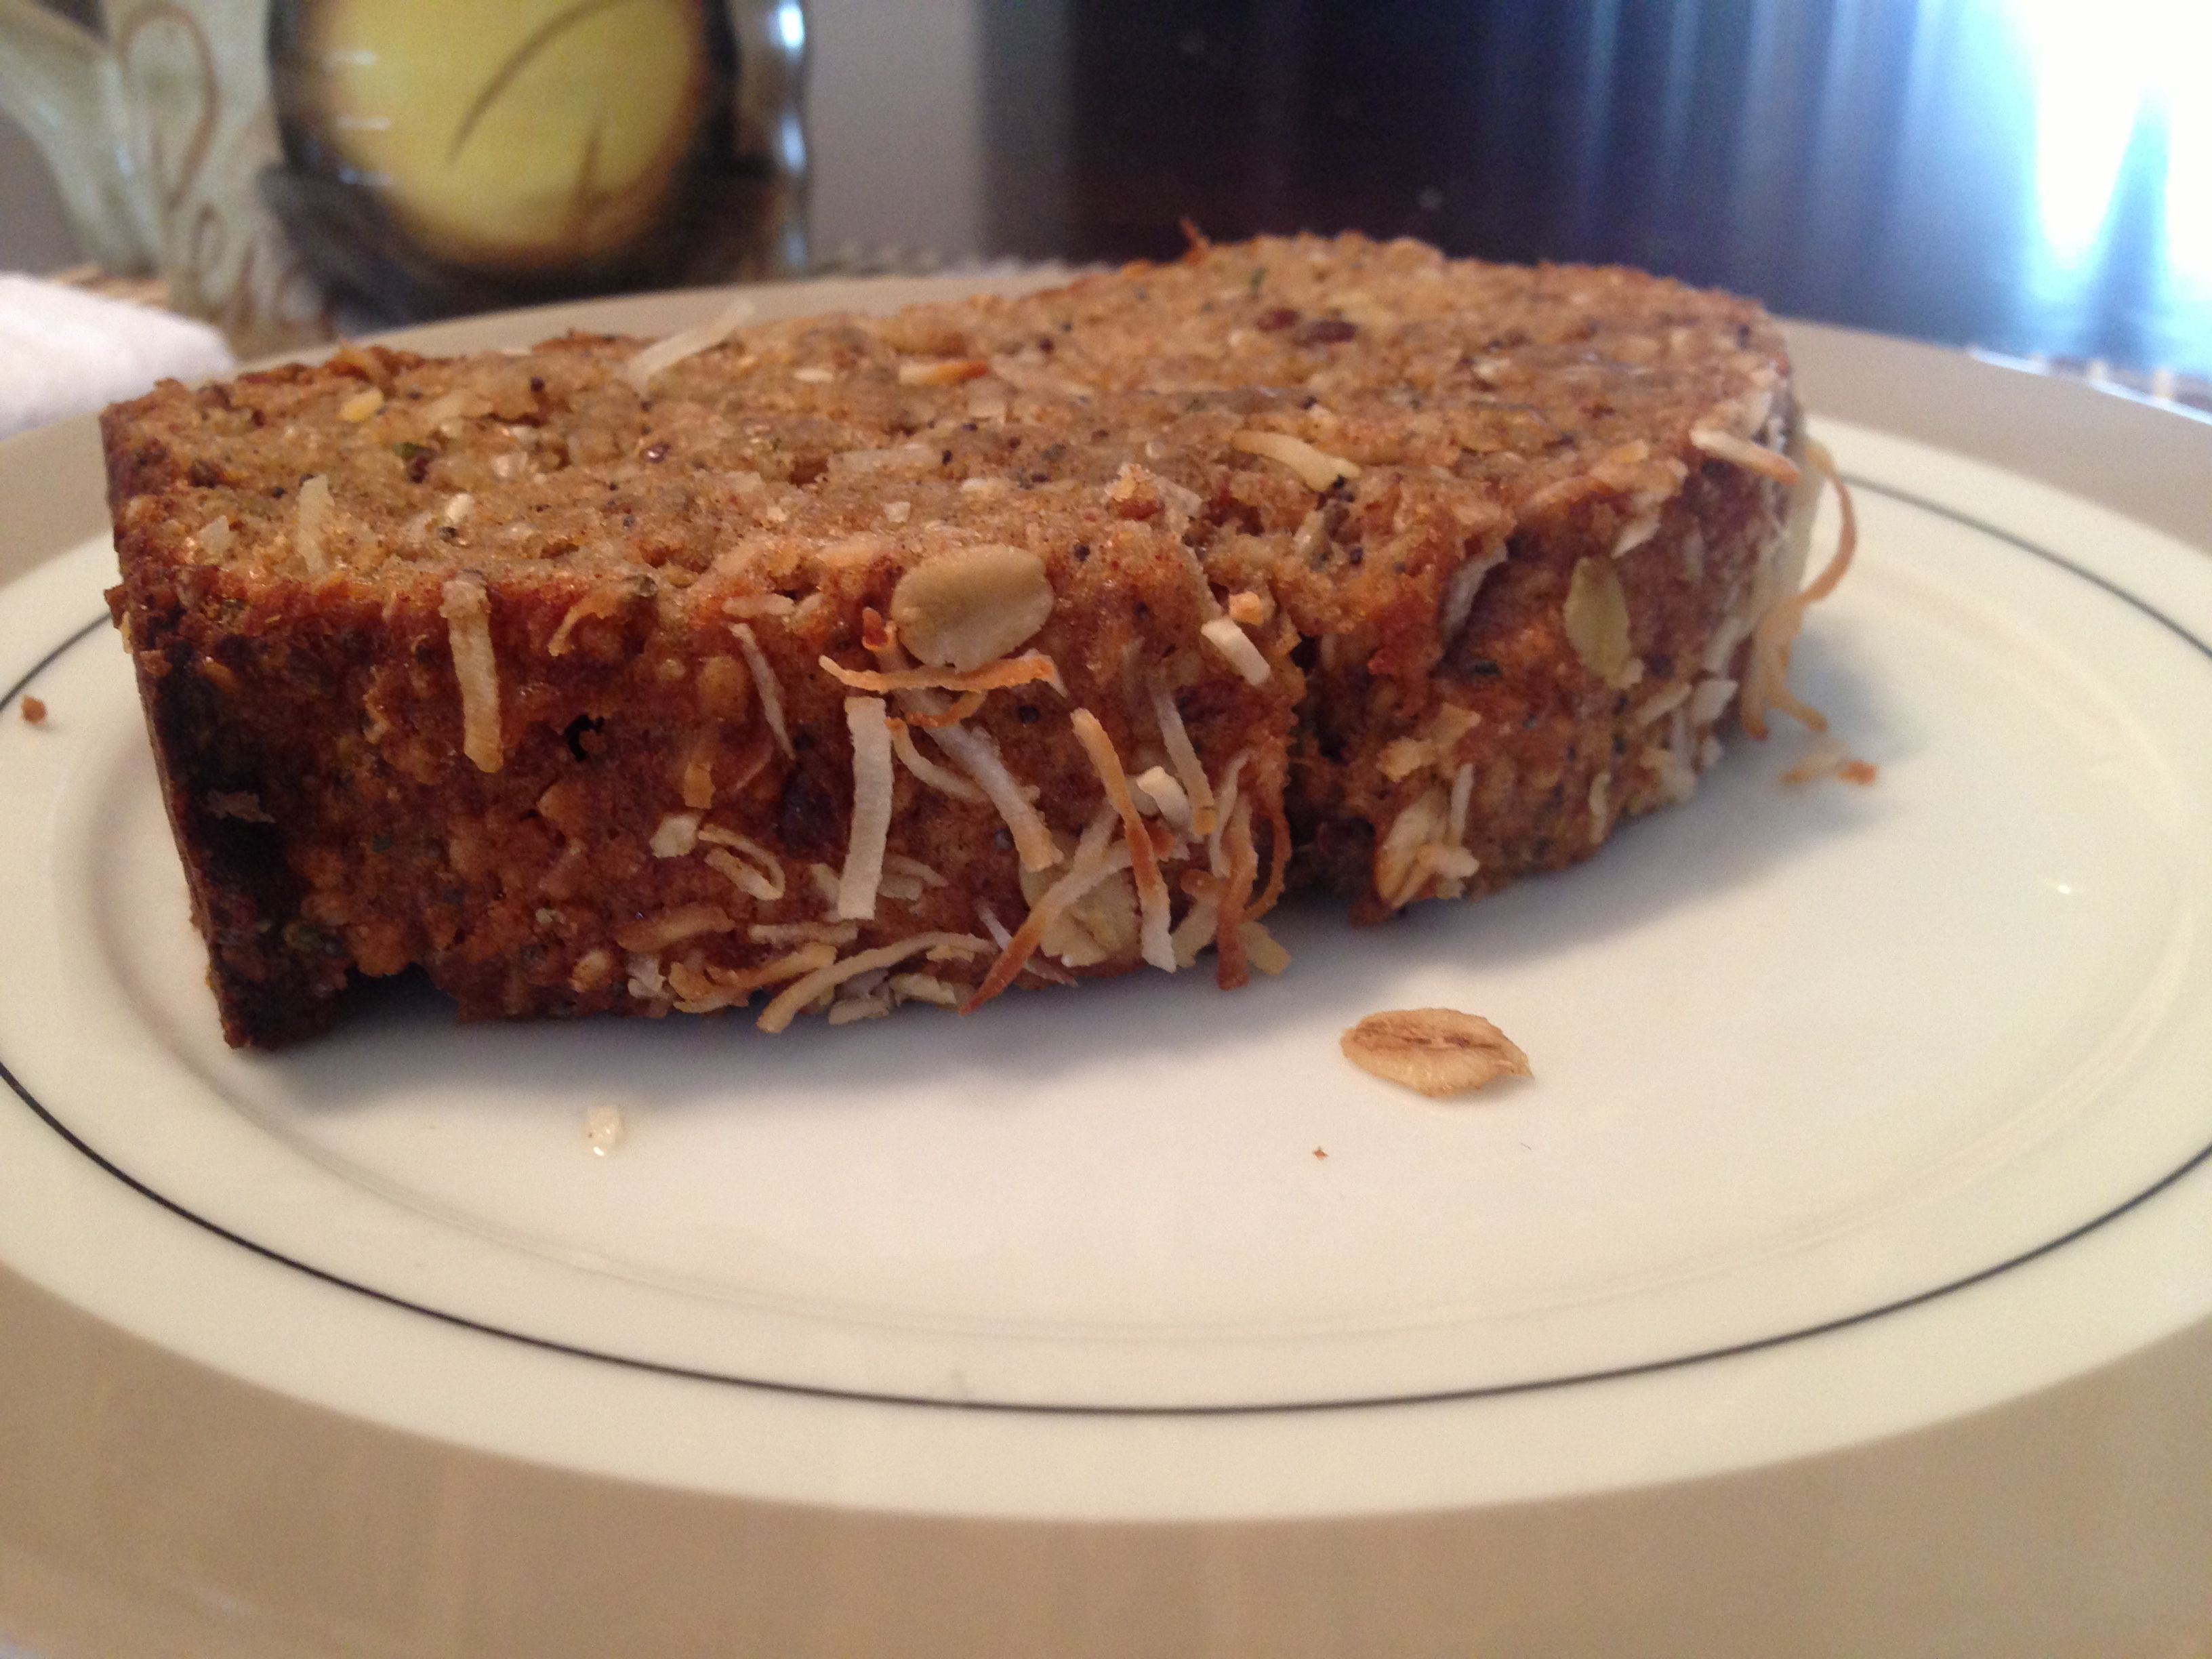 banana bread: 1/2 C coconut oil 1/4 C Brn sugar packed 2 eggs 4 over-ripe bananas mashed 1 T vanilla 1 1/2 C whole wheat flour 2 t baking powder 1/2 t salt 1/2 C blendered oats (or instant) 2 t cinnamon  3/4 C healthy add ins (seeds, nuts, raw coconut, hemp hearts, chia, flax meal or seed, fibers, brans, germs,protein, raisins/cr...